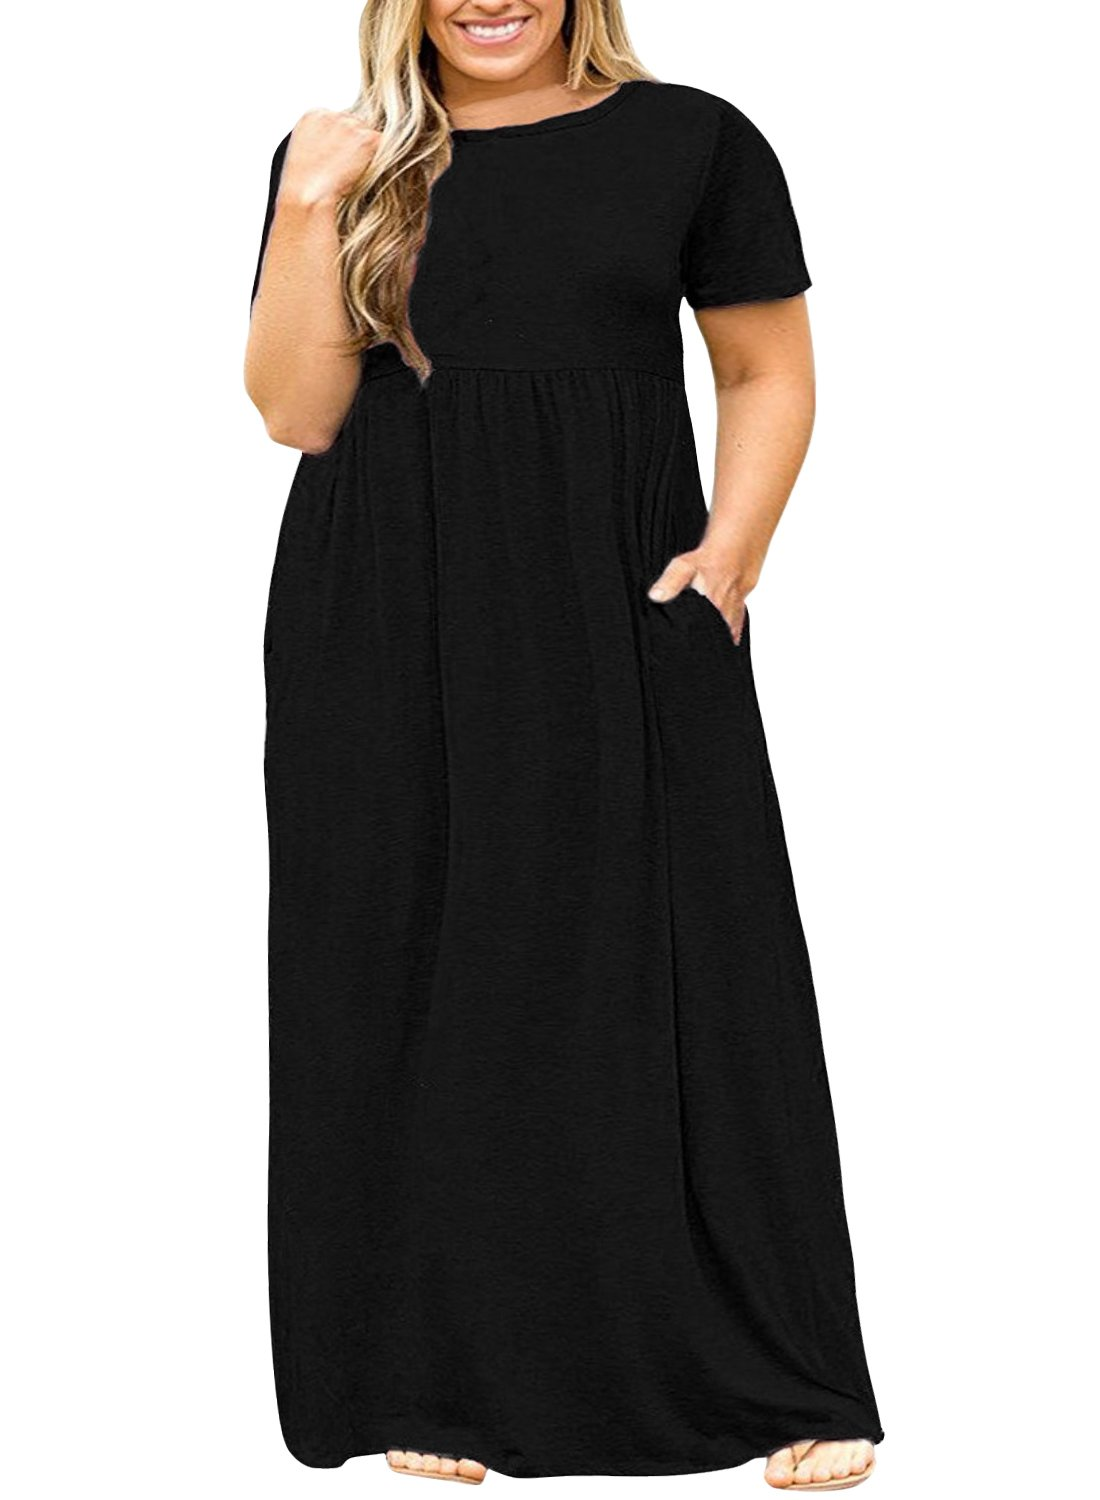 Nemidor Women Short Sleeve Loose Plain Casual Plus Size Long Maxi Dress with Pockets (Black, 22W)